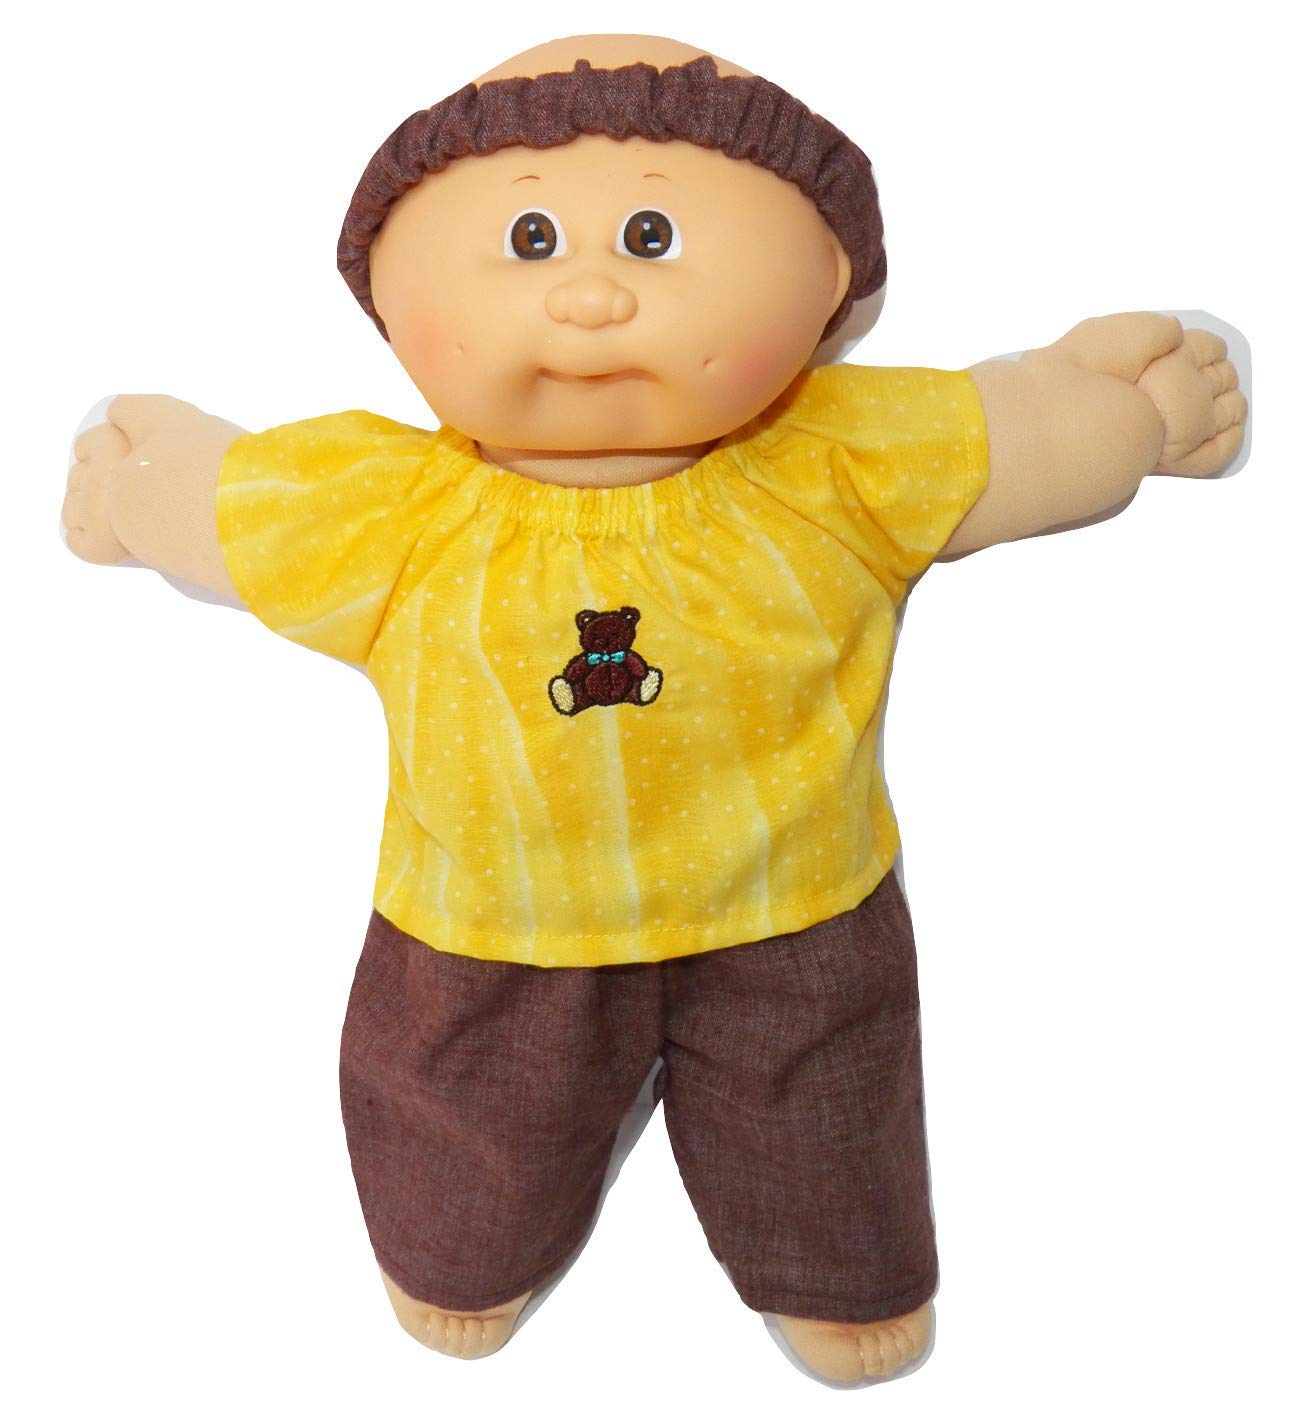 Cabbage Patch Doll Clothes Fits 14 Inch Girl or Preemie Yellow Embroidered Teddy Bear Blouse Brown Pants Headband No Doll